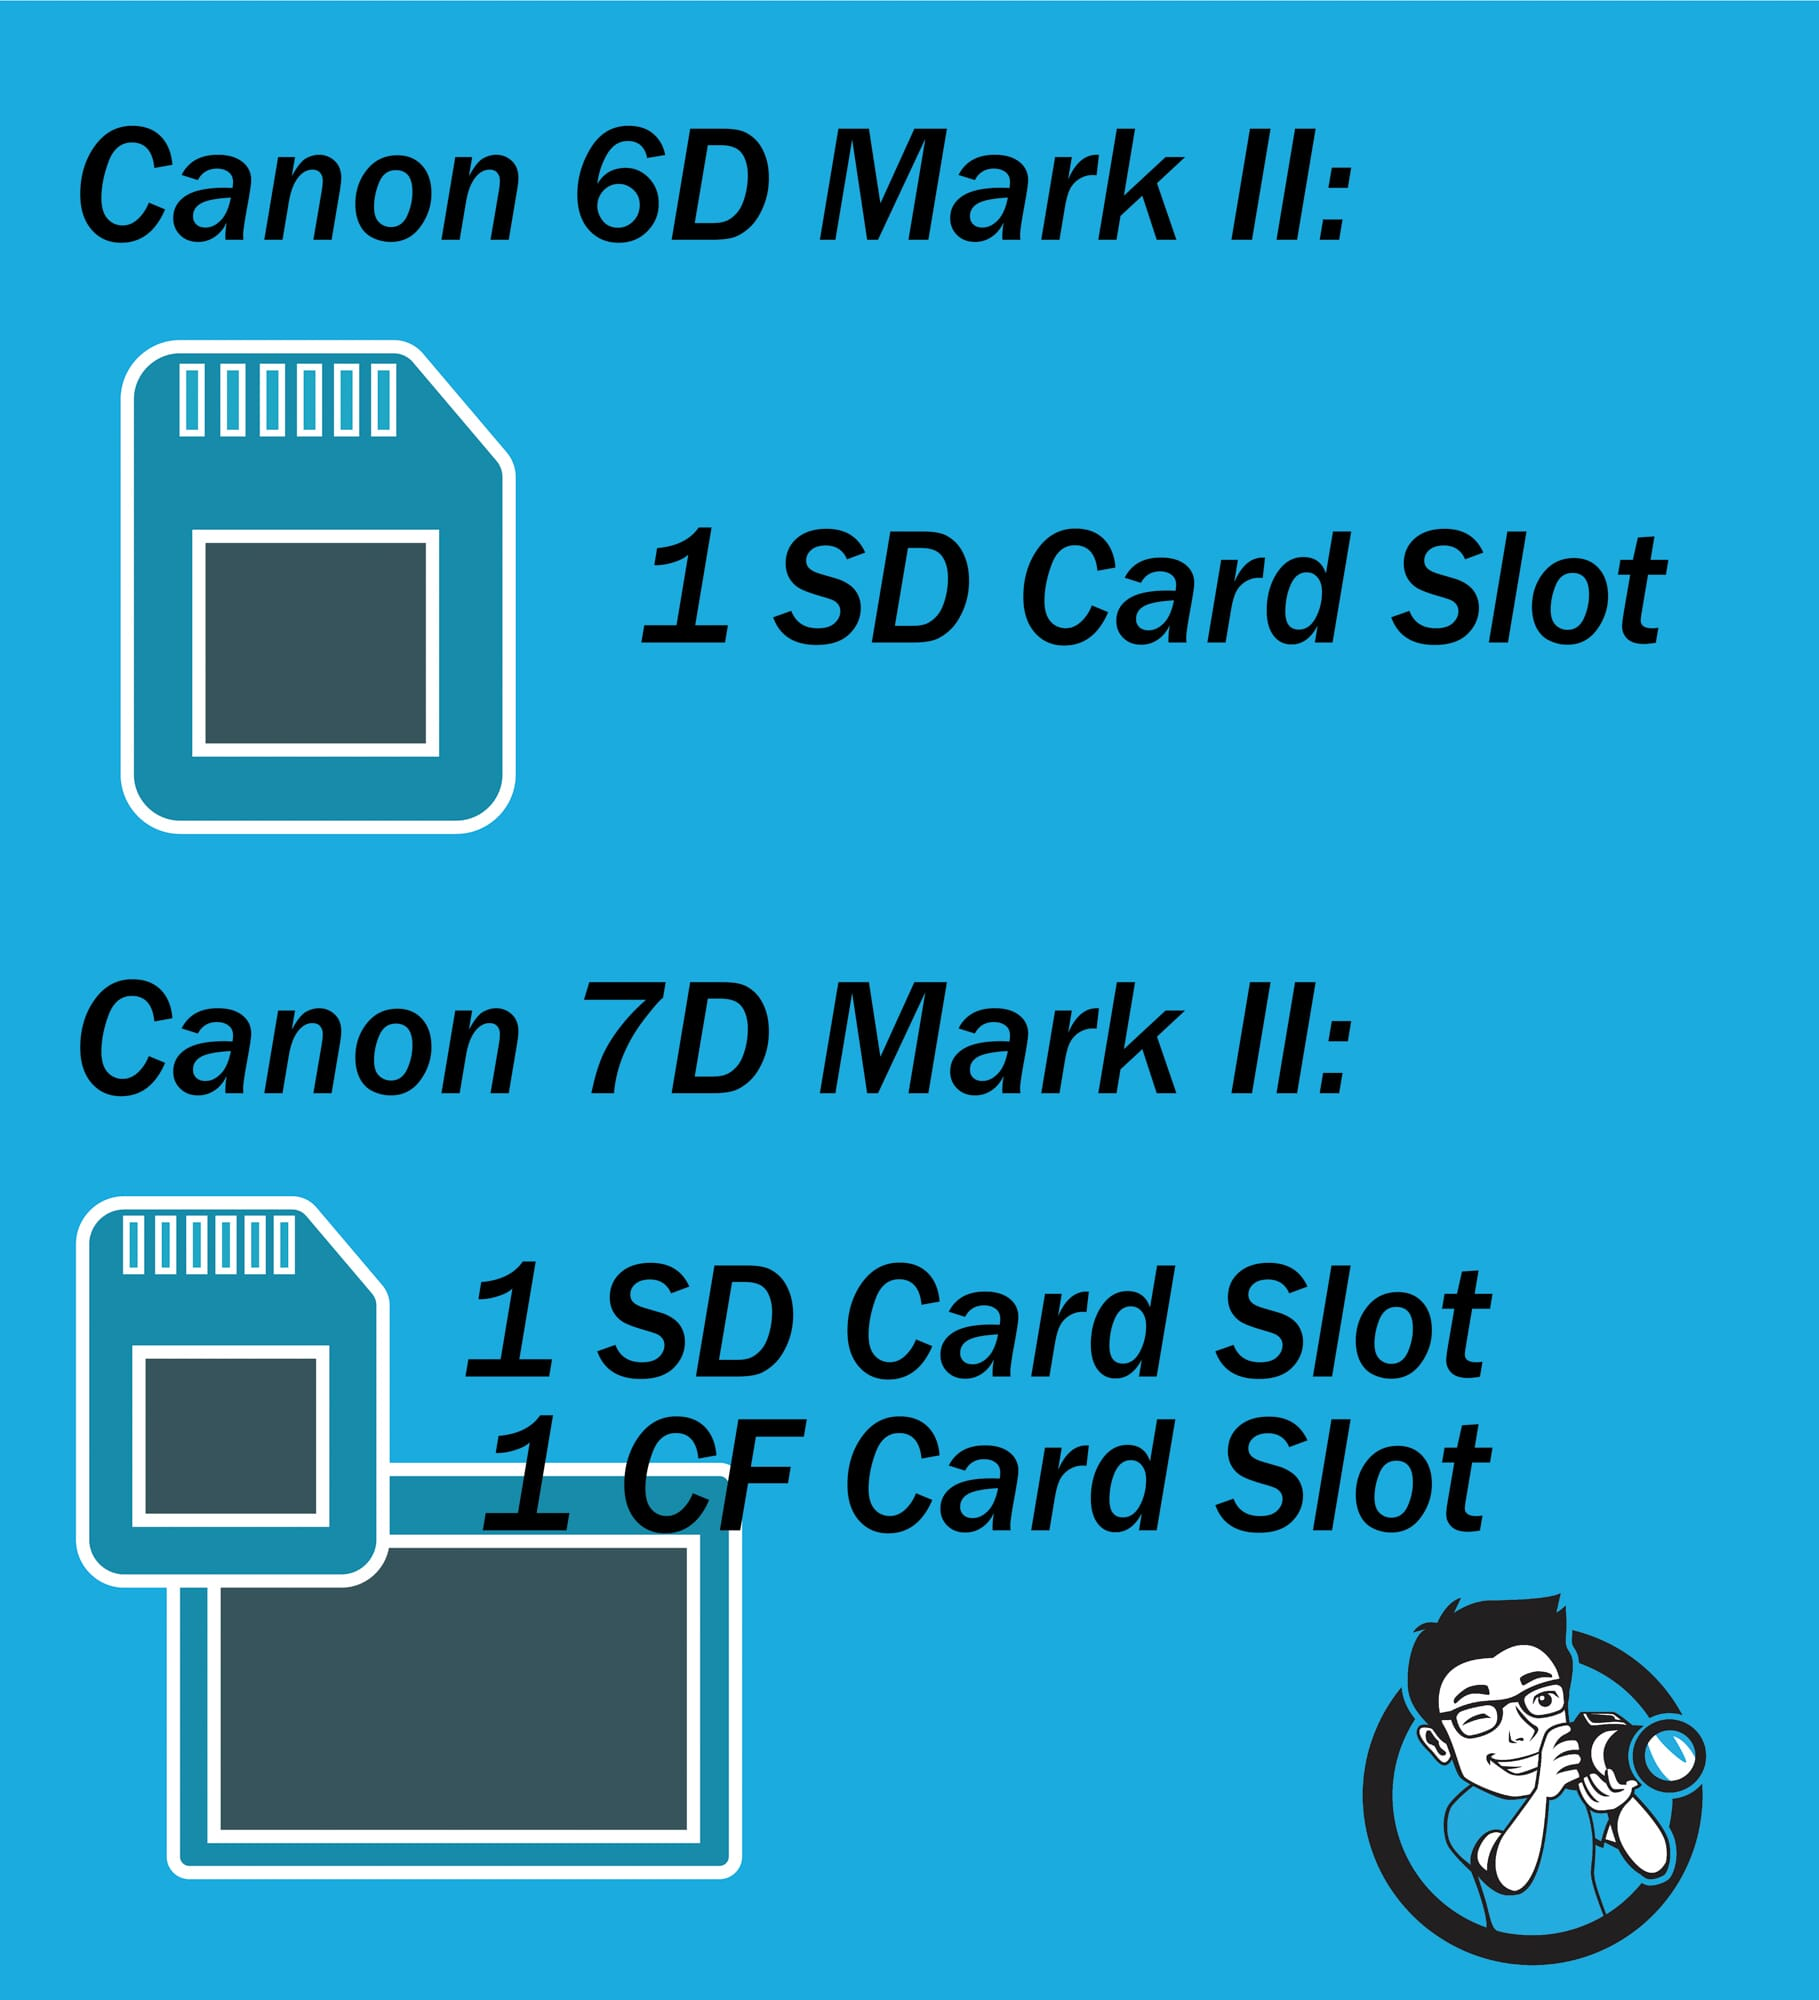 Canon 6D vs 7D card slots comparison